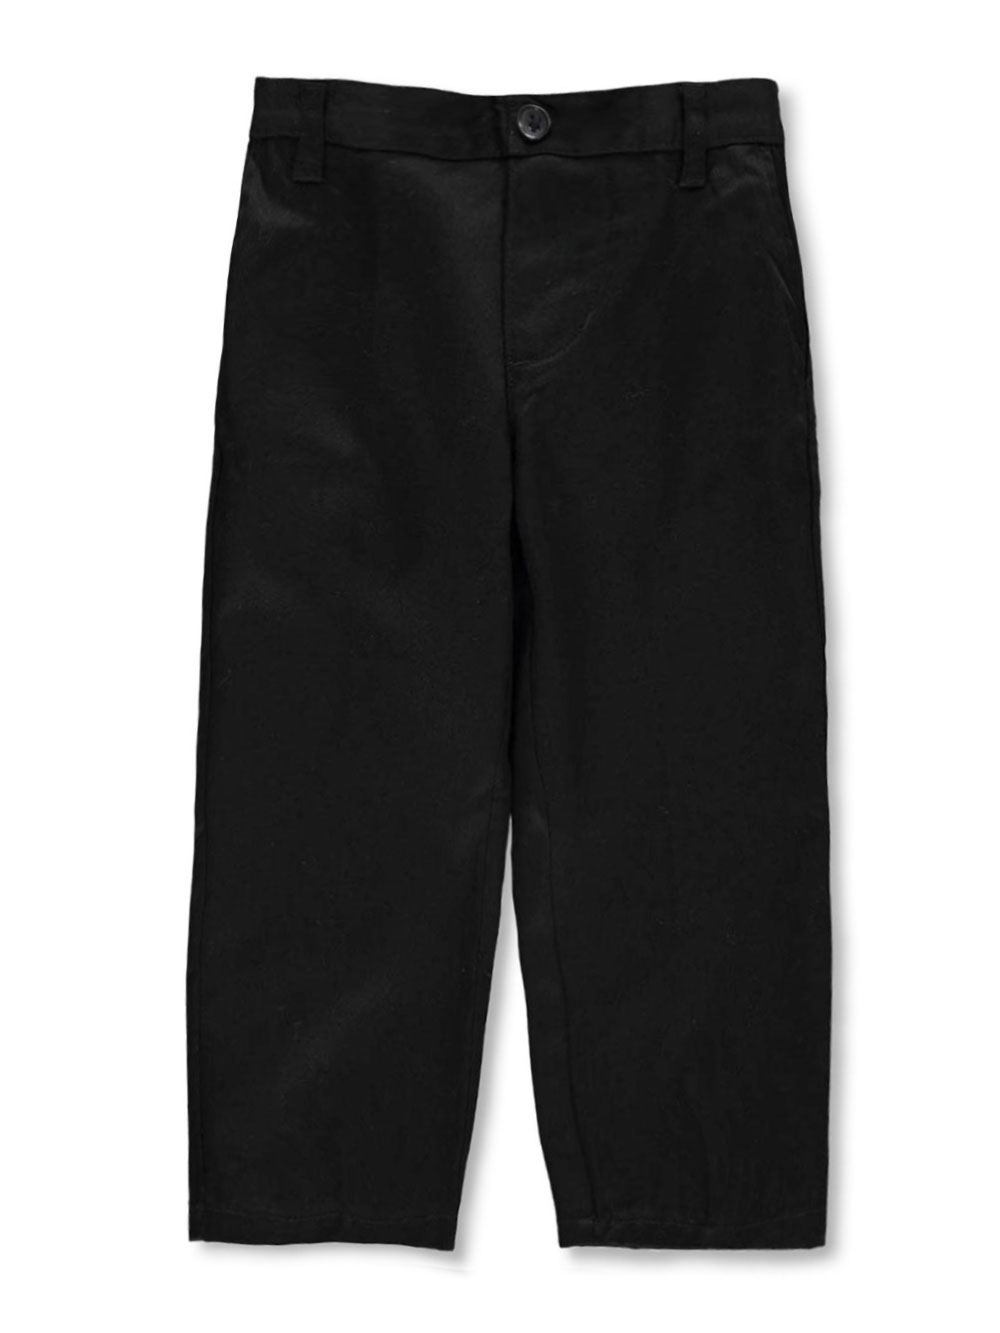 Size 3t Pants for Boys